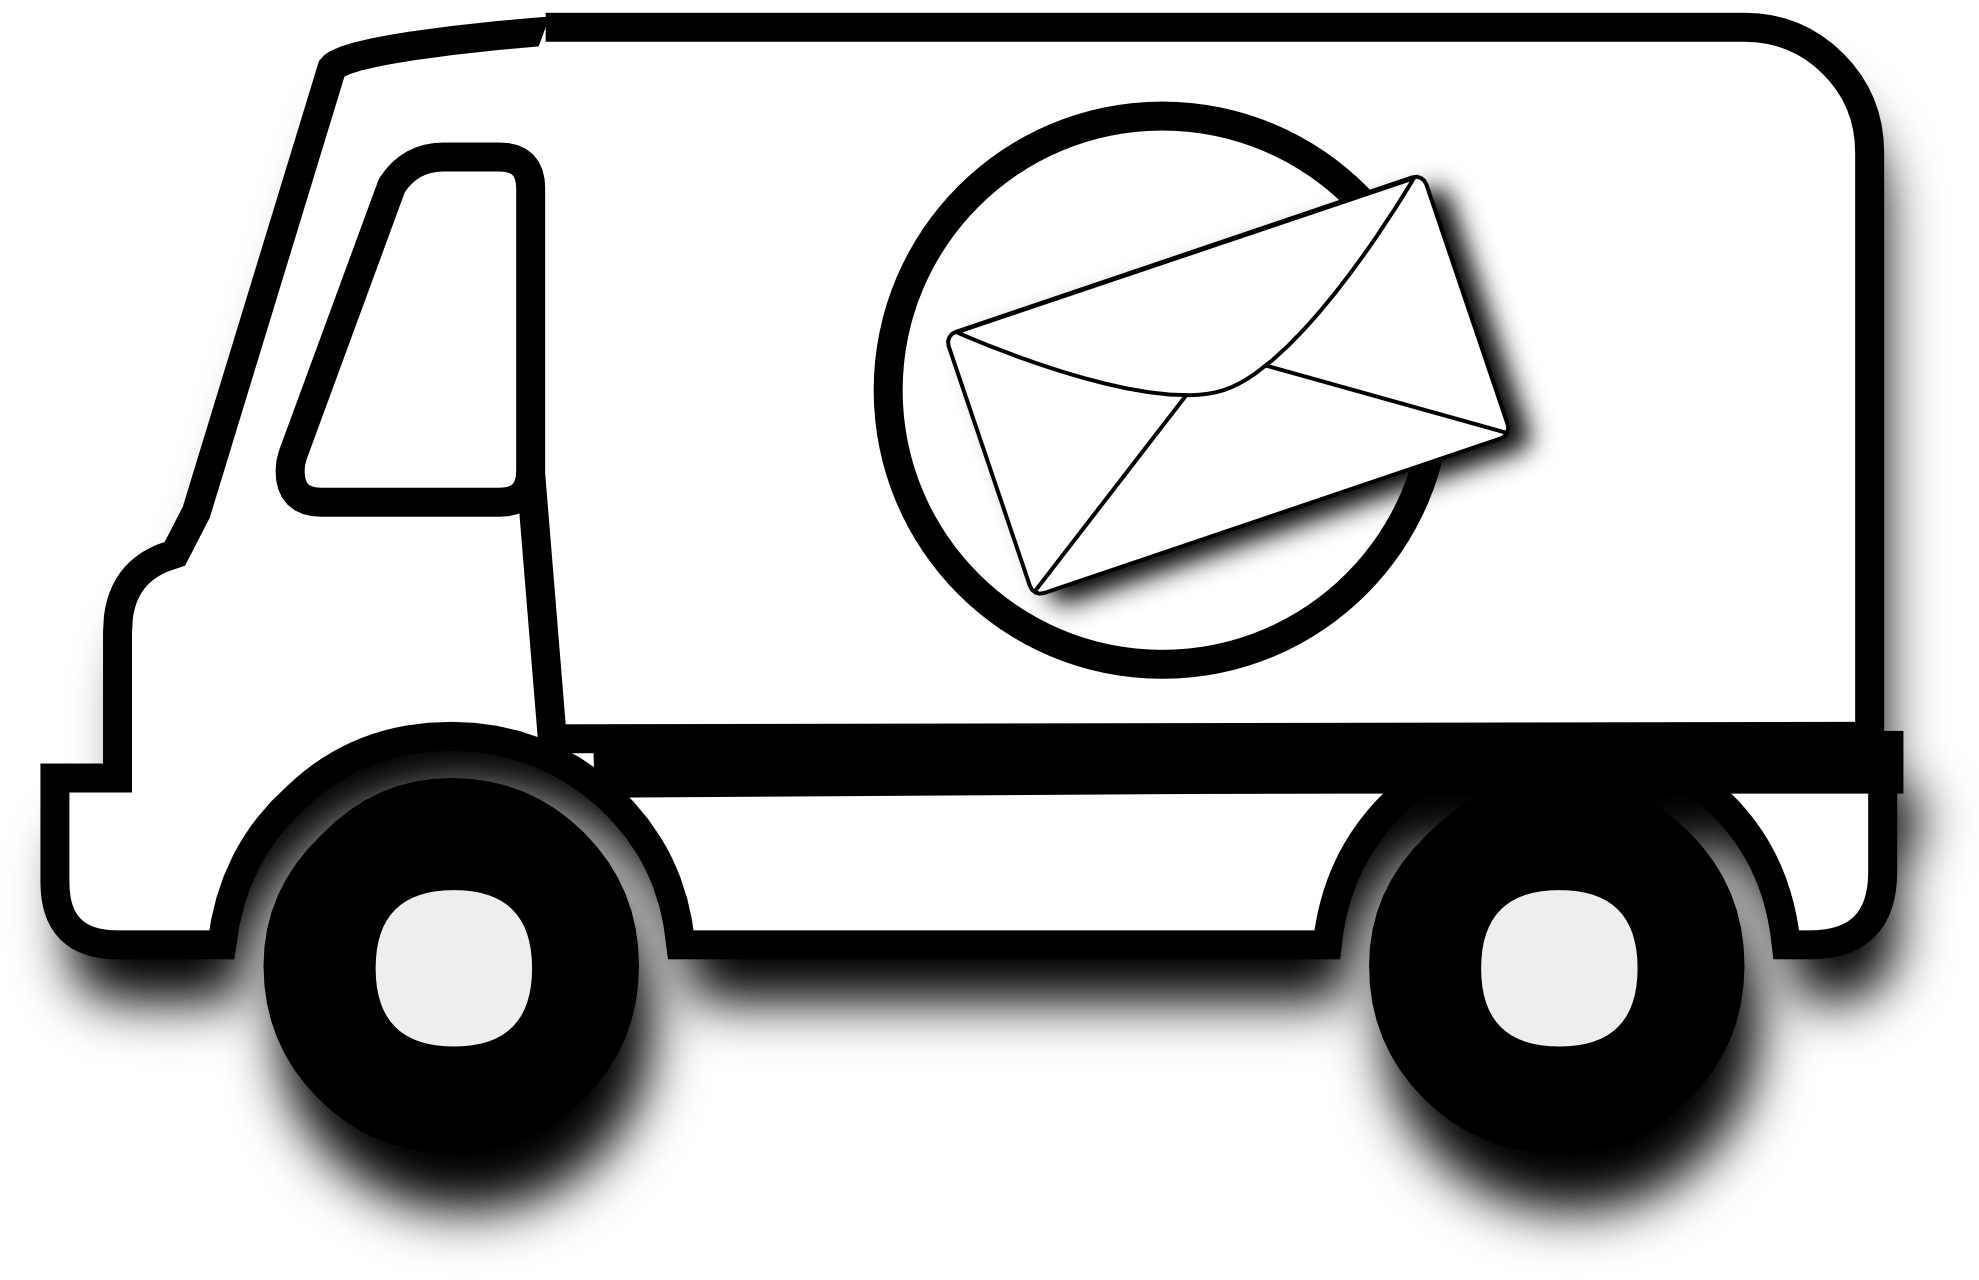 Car on a road clipart clipart transparent stock Free Mail Car Cliparts, Download Free Clip Art, Free Clip Art on ... clipart transparent stock